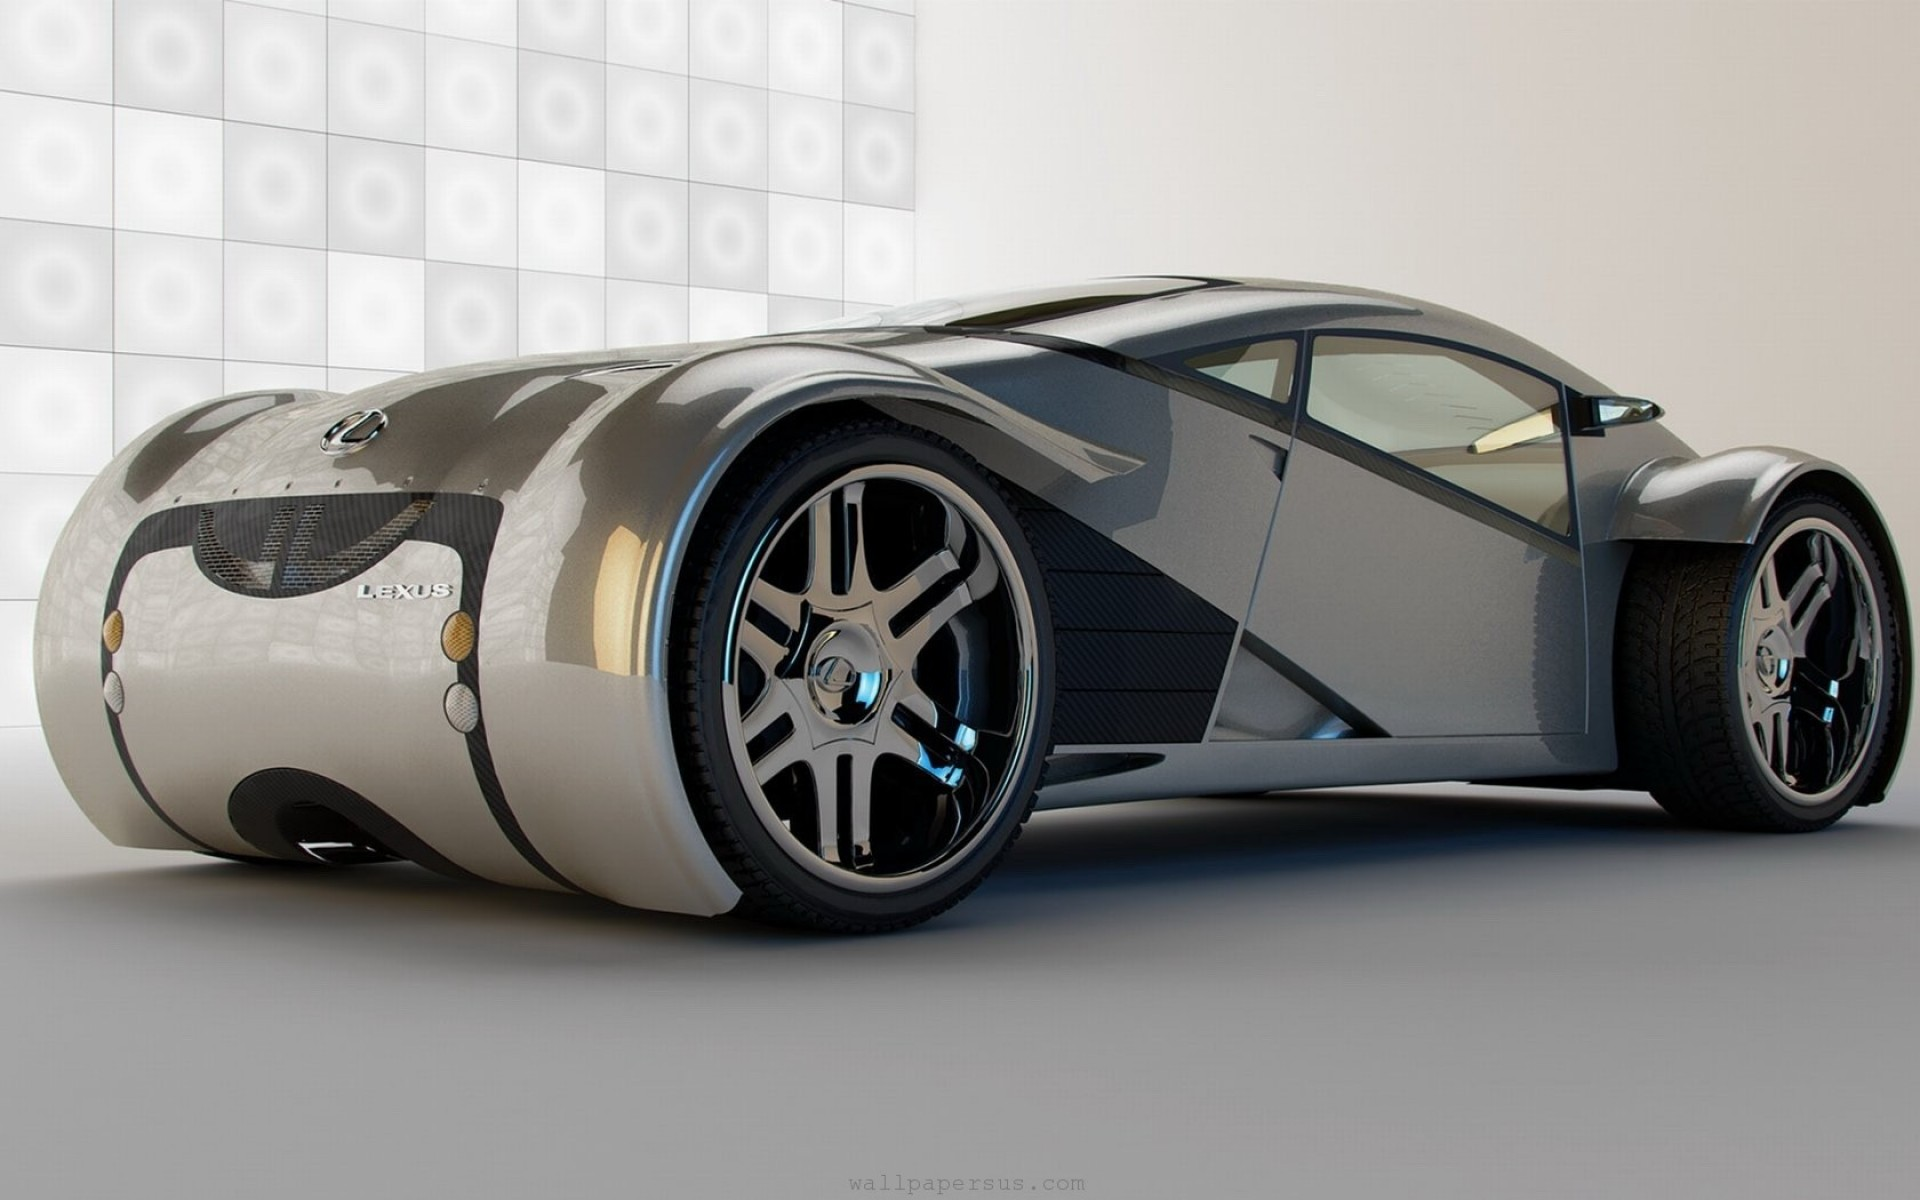 Amazing Stylish And Expensive Racing Cars Hd Wallpapers: Prototipo Lexus Wallpapers Coches.